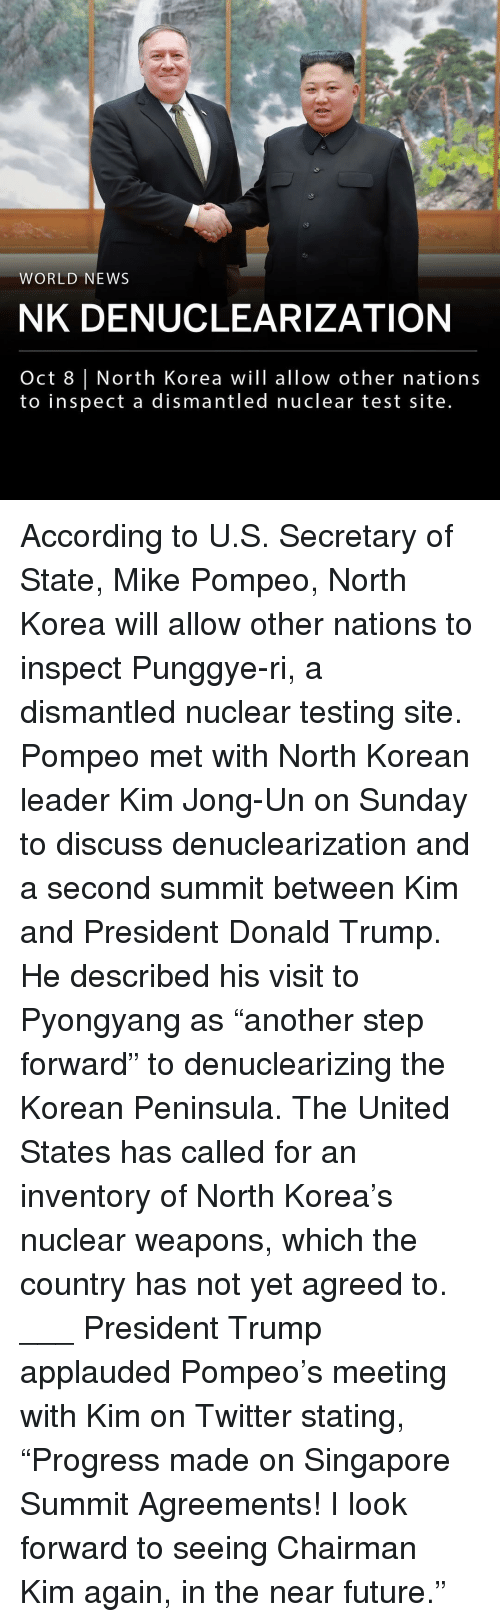 """Singapore: WORLD NEWS  NK DENUCLEARIZATION  Oct 8 